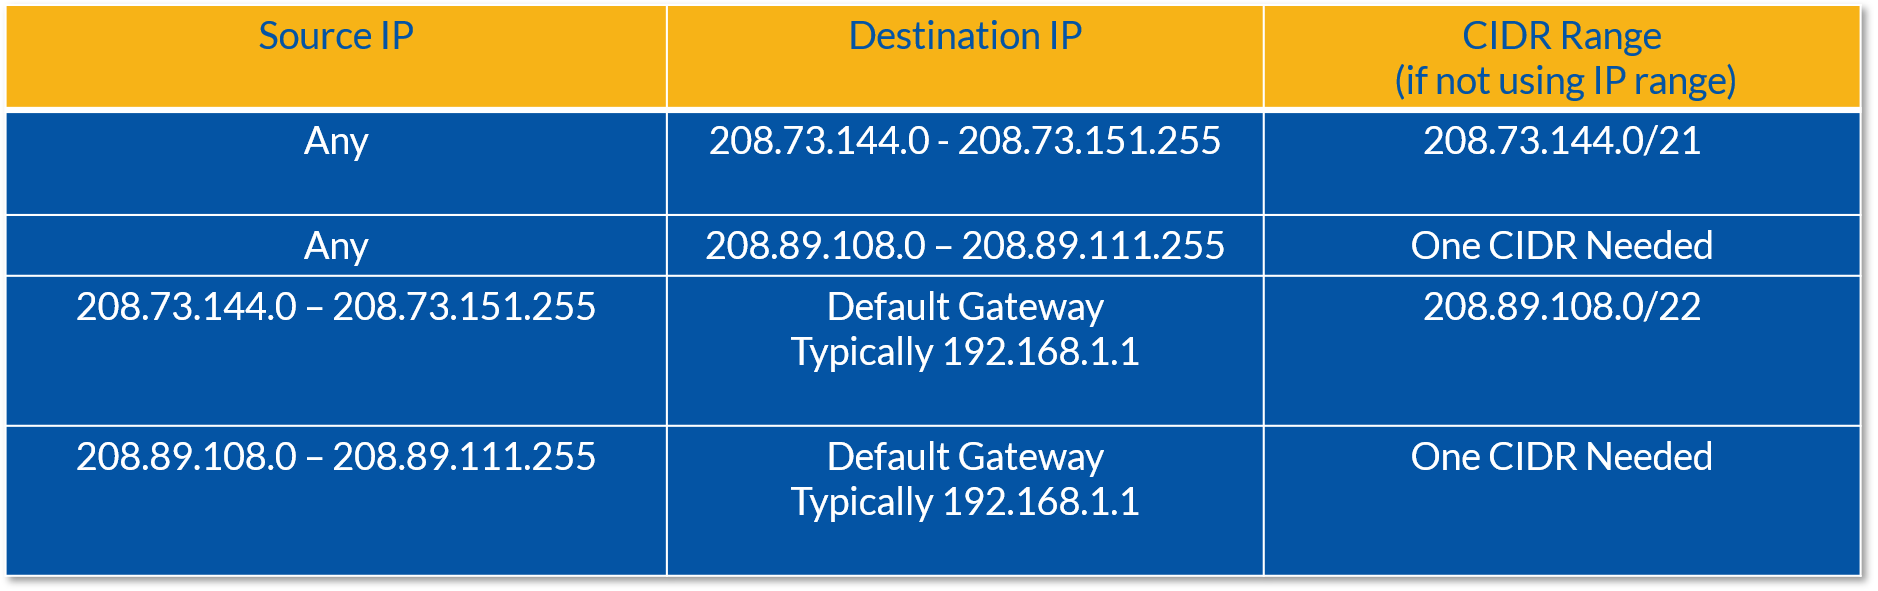 Nextiva Network IP Addresses for Firewalls and Routers